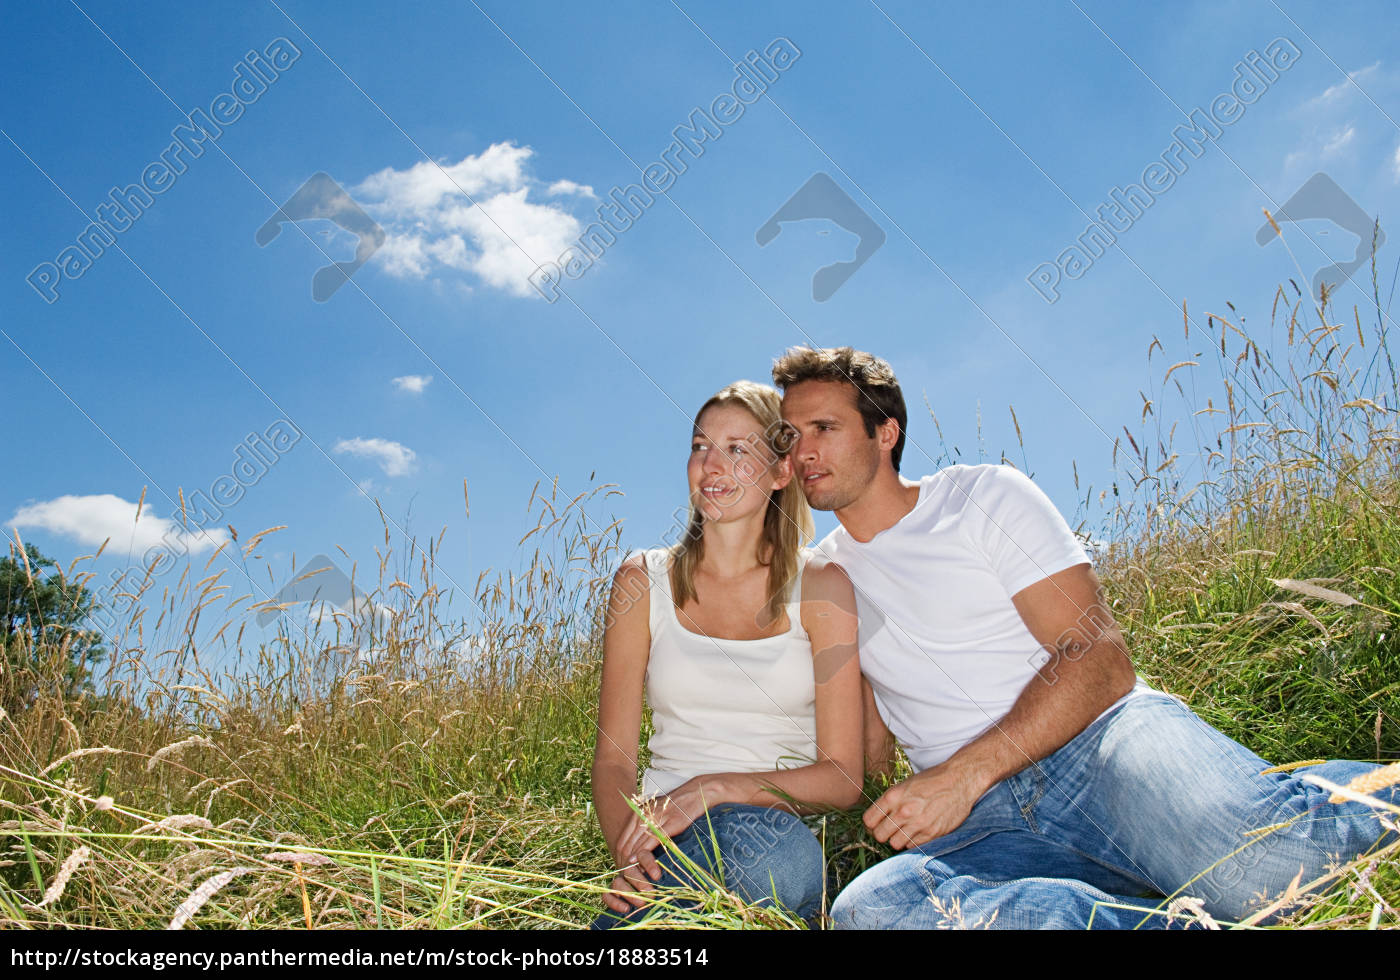 couple, sitting, in, a, field - 18883514